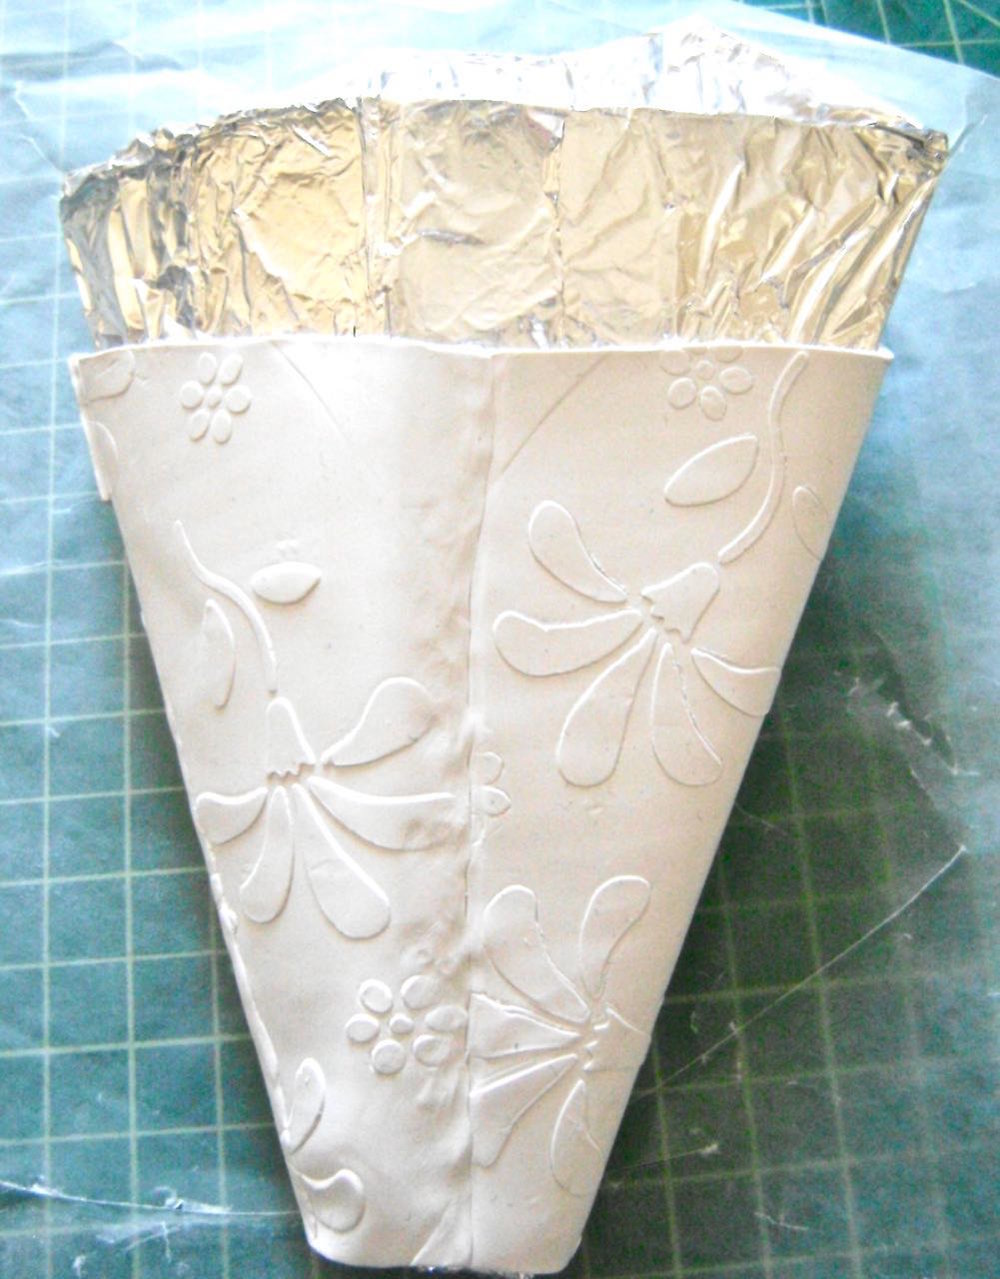 step 10 - Lift the joined sconce pieces off the work surface, peeling away the wax paper.  Wrap the clay sconce around the mold.  The center of the sconce should match the center of the mold.  Blend the back seam using sculpting tools.